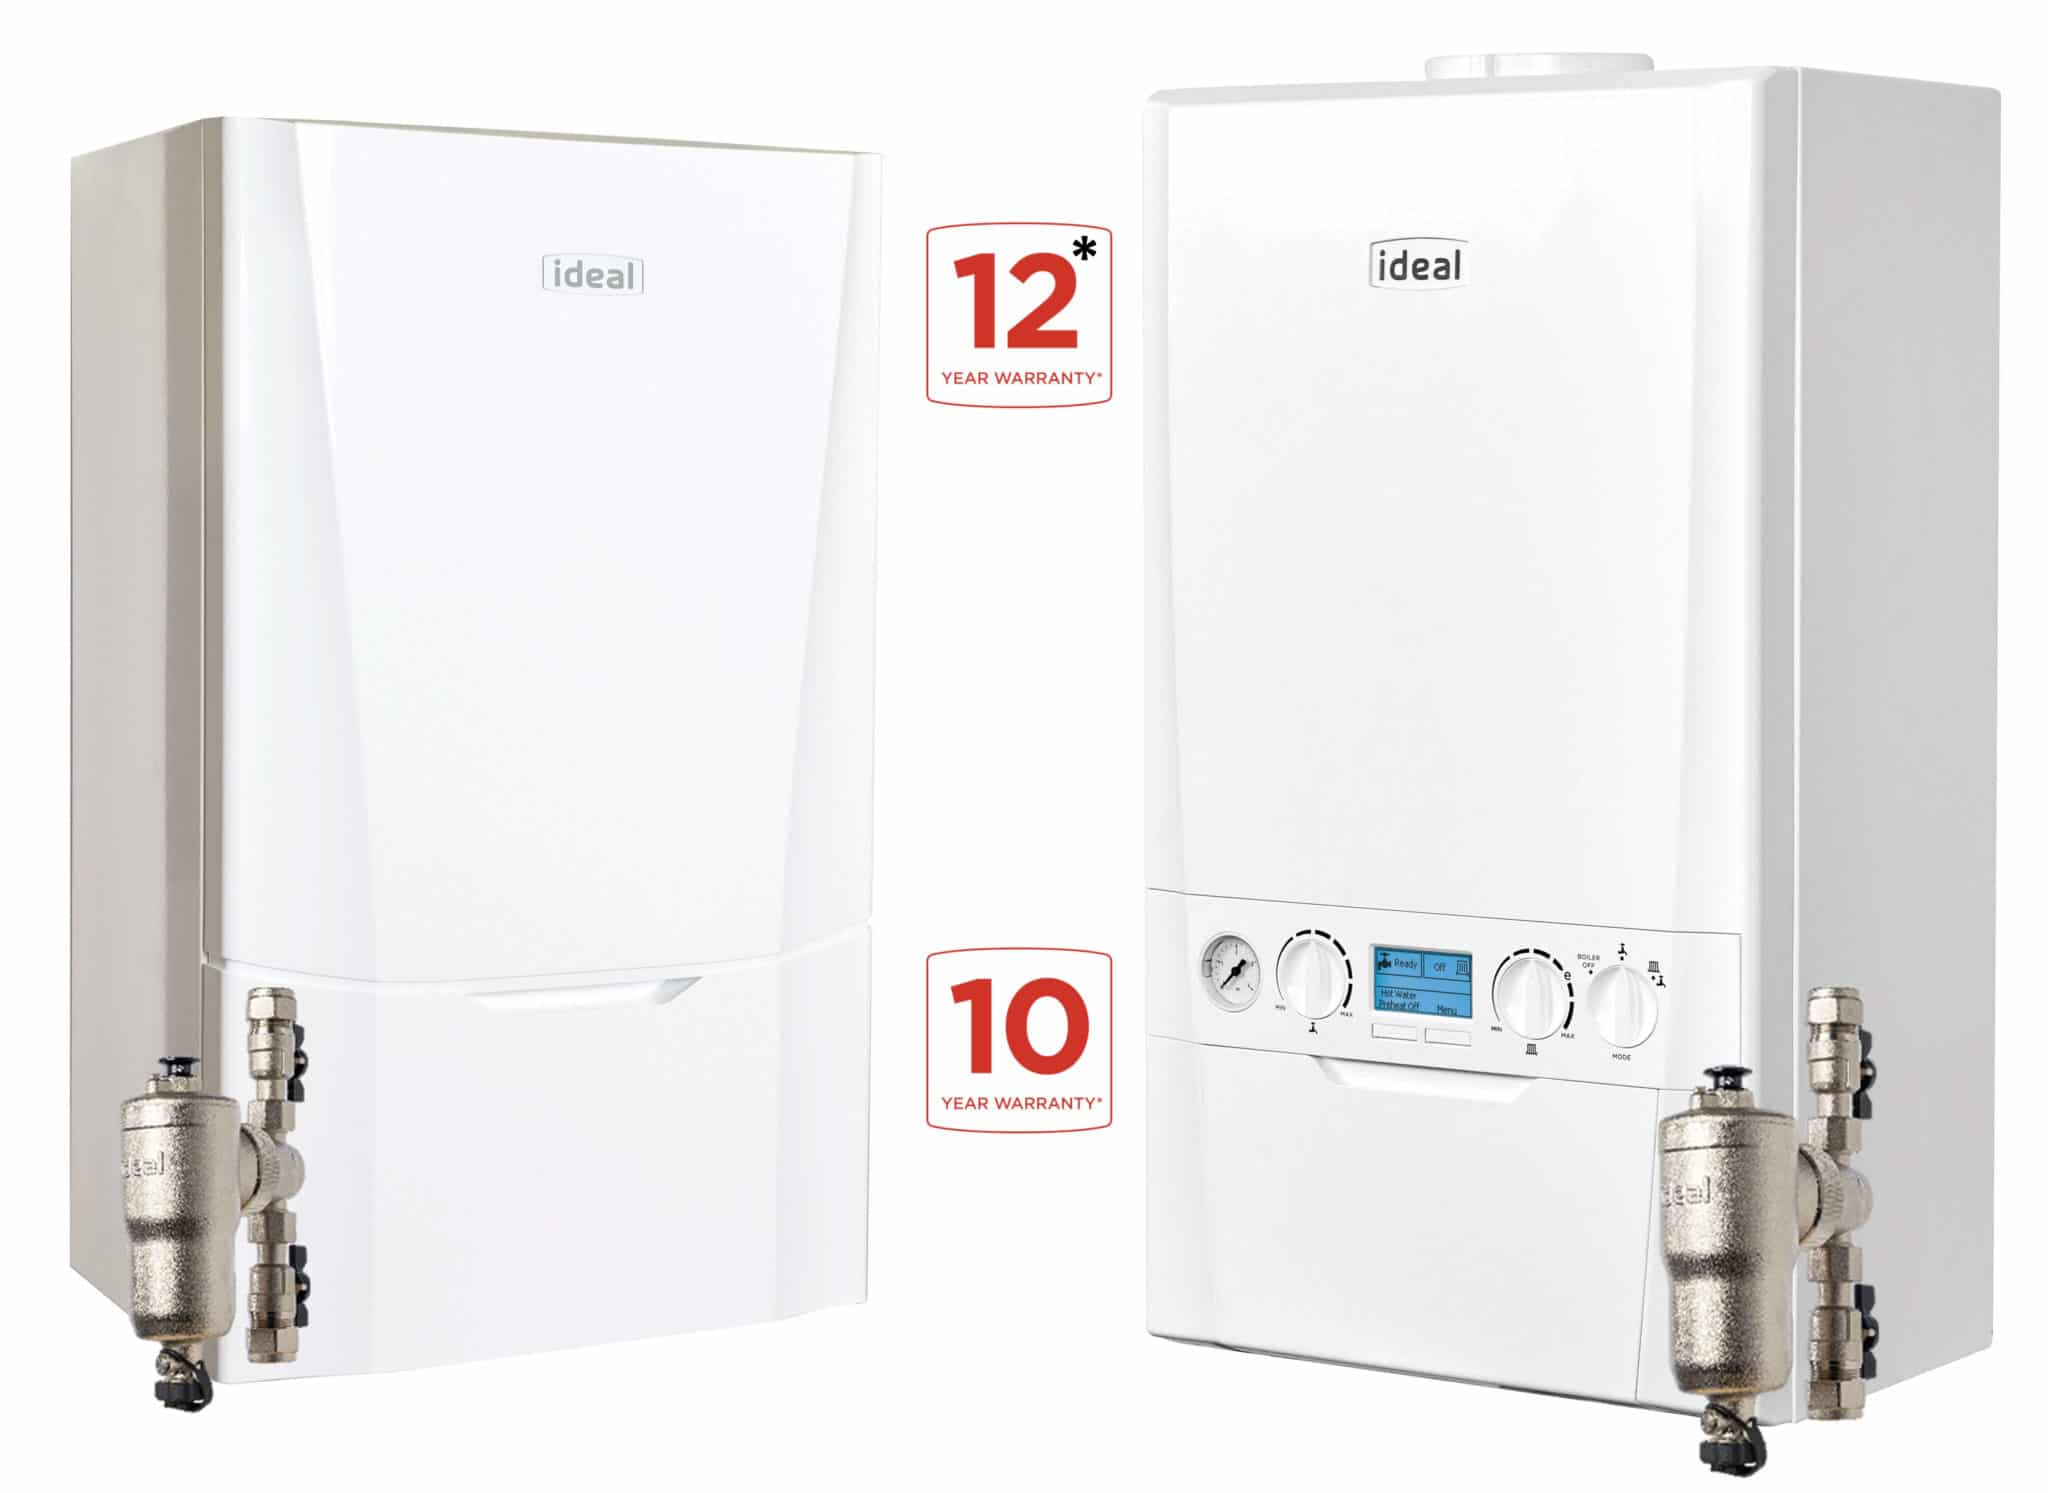 Ideal Boilers 12 year 10 year